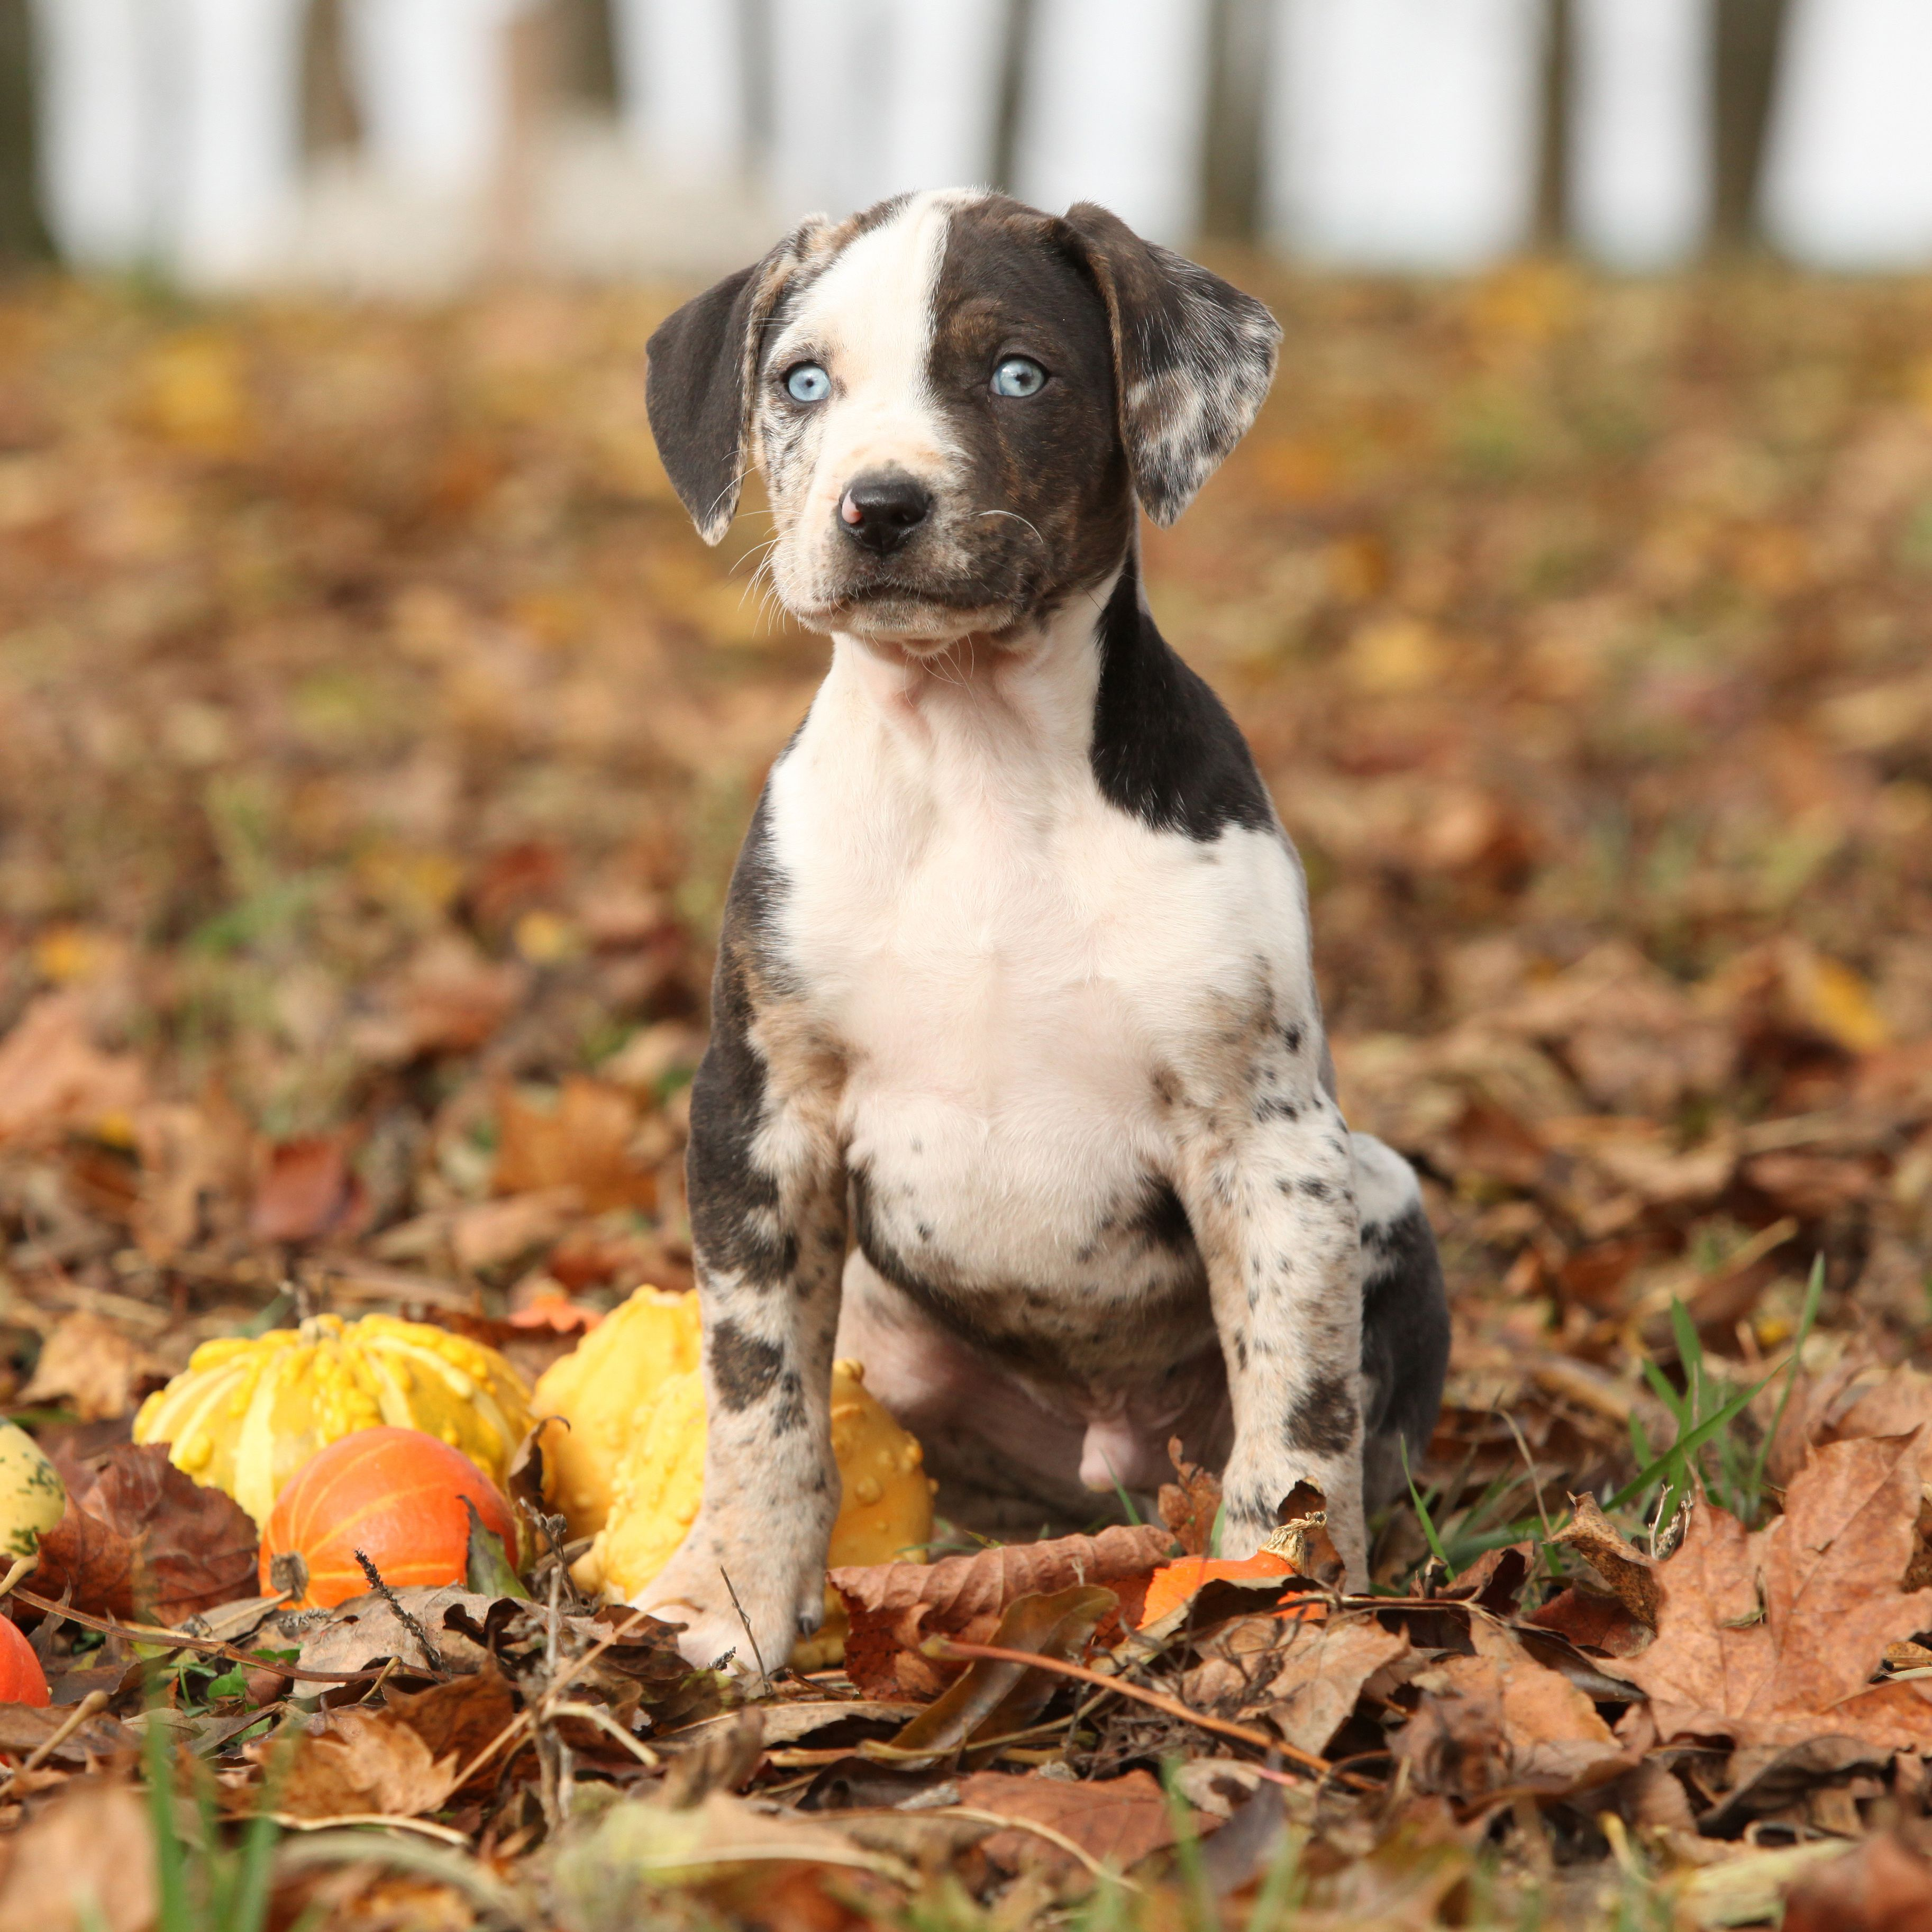 Did you know that the Catahoula Leopard Dog is one of the